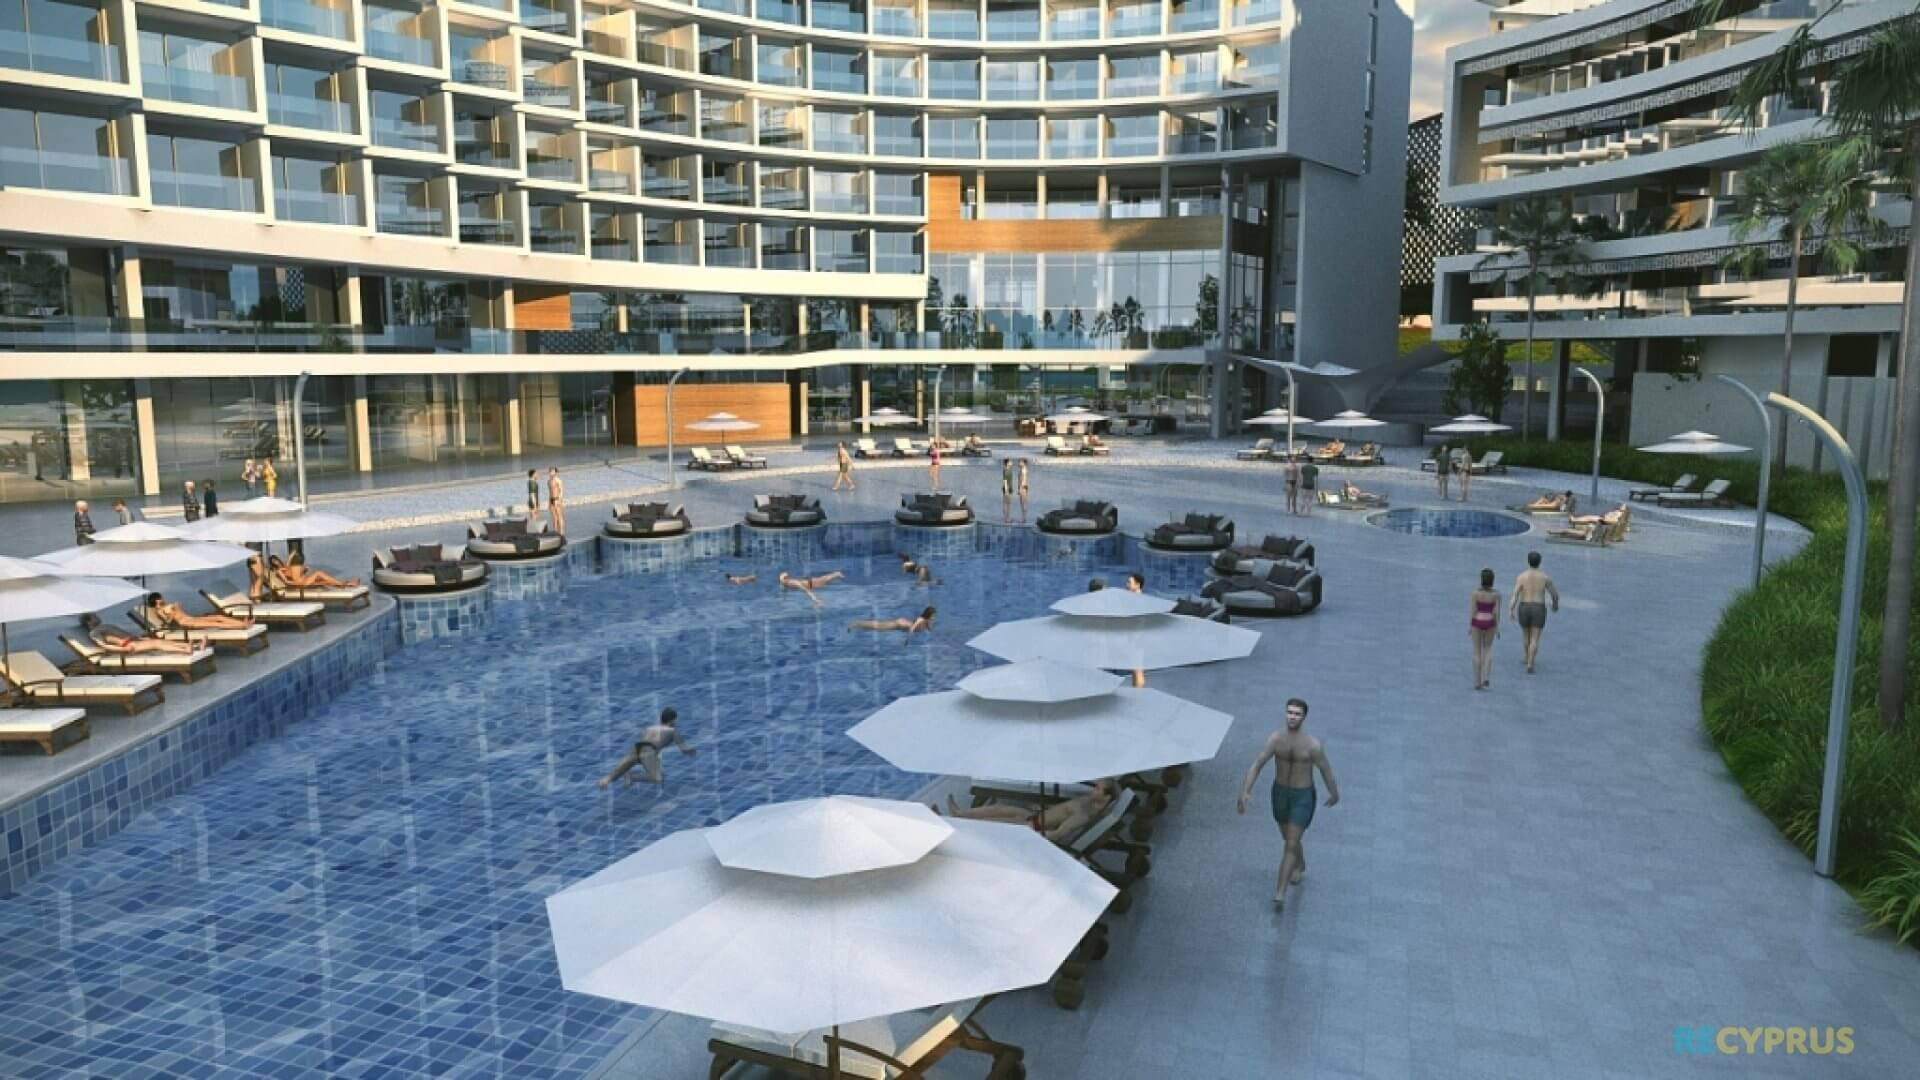 Apartment for sale Ayia Thekla Famagusta Cyprus 6 3450